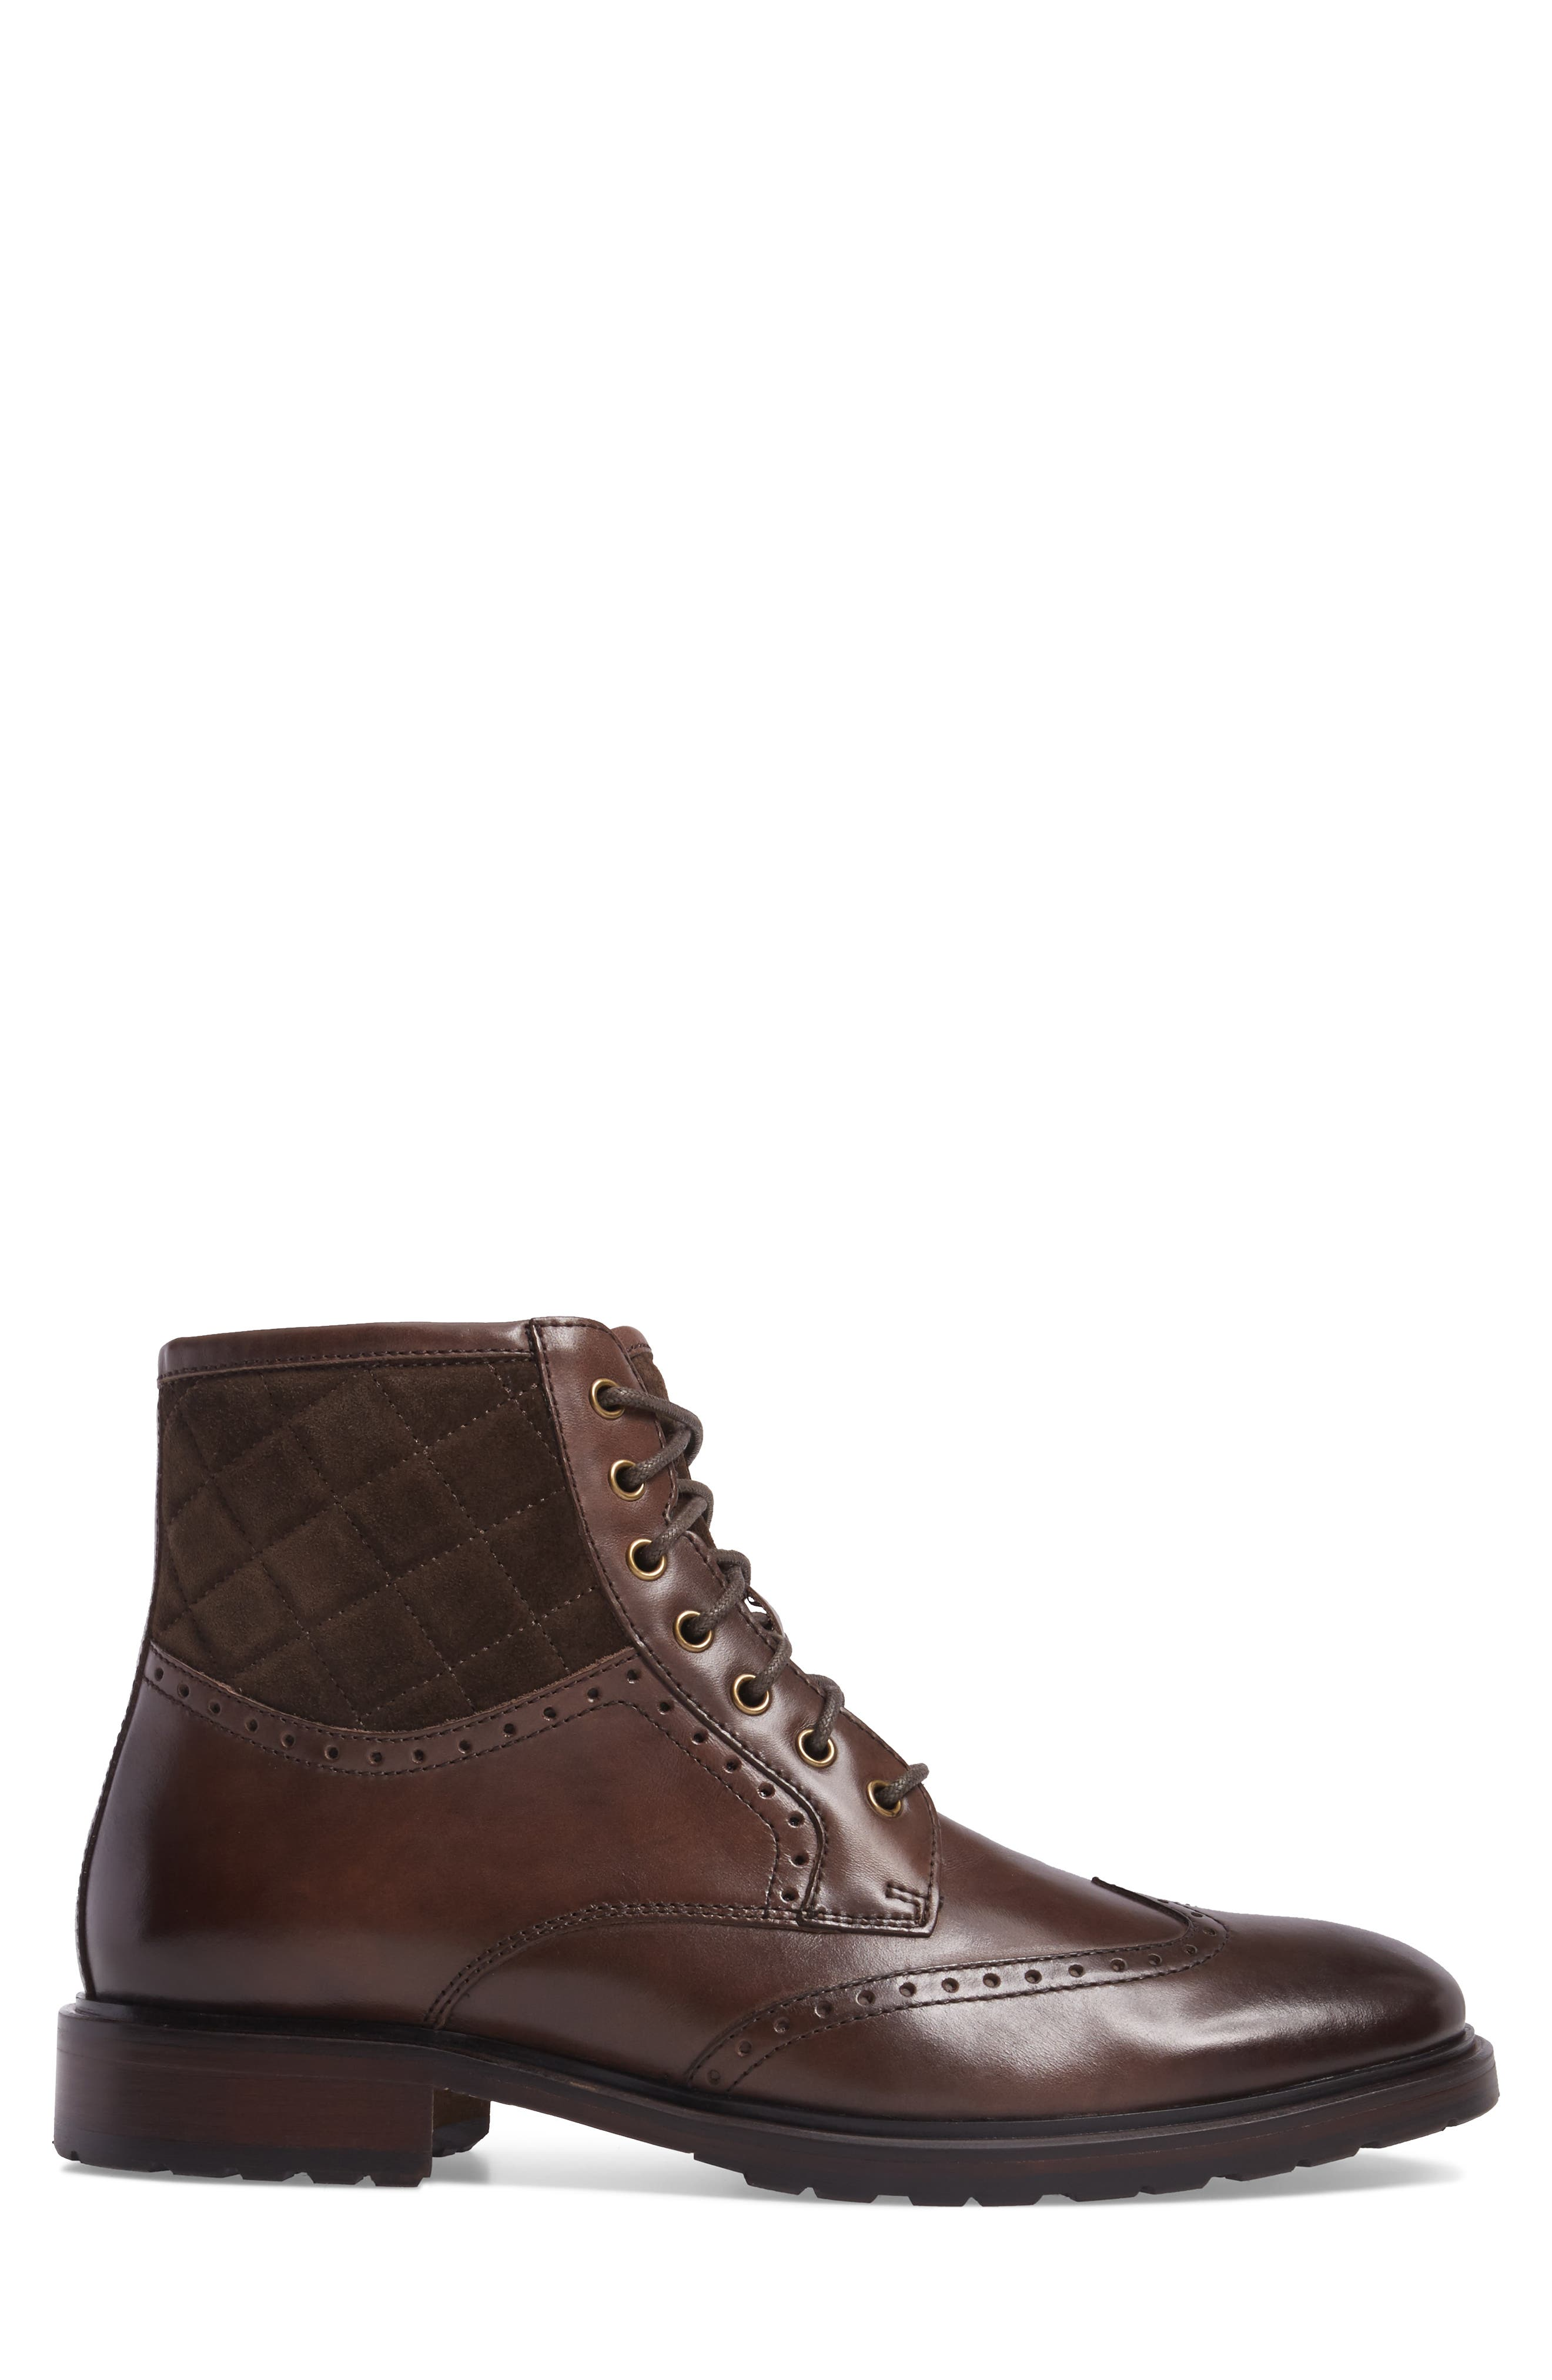 Myles Wingtip Boot,                             Alternate thumbnail 3, color,                             Mahogany Leather